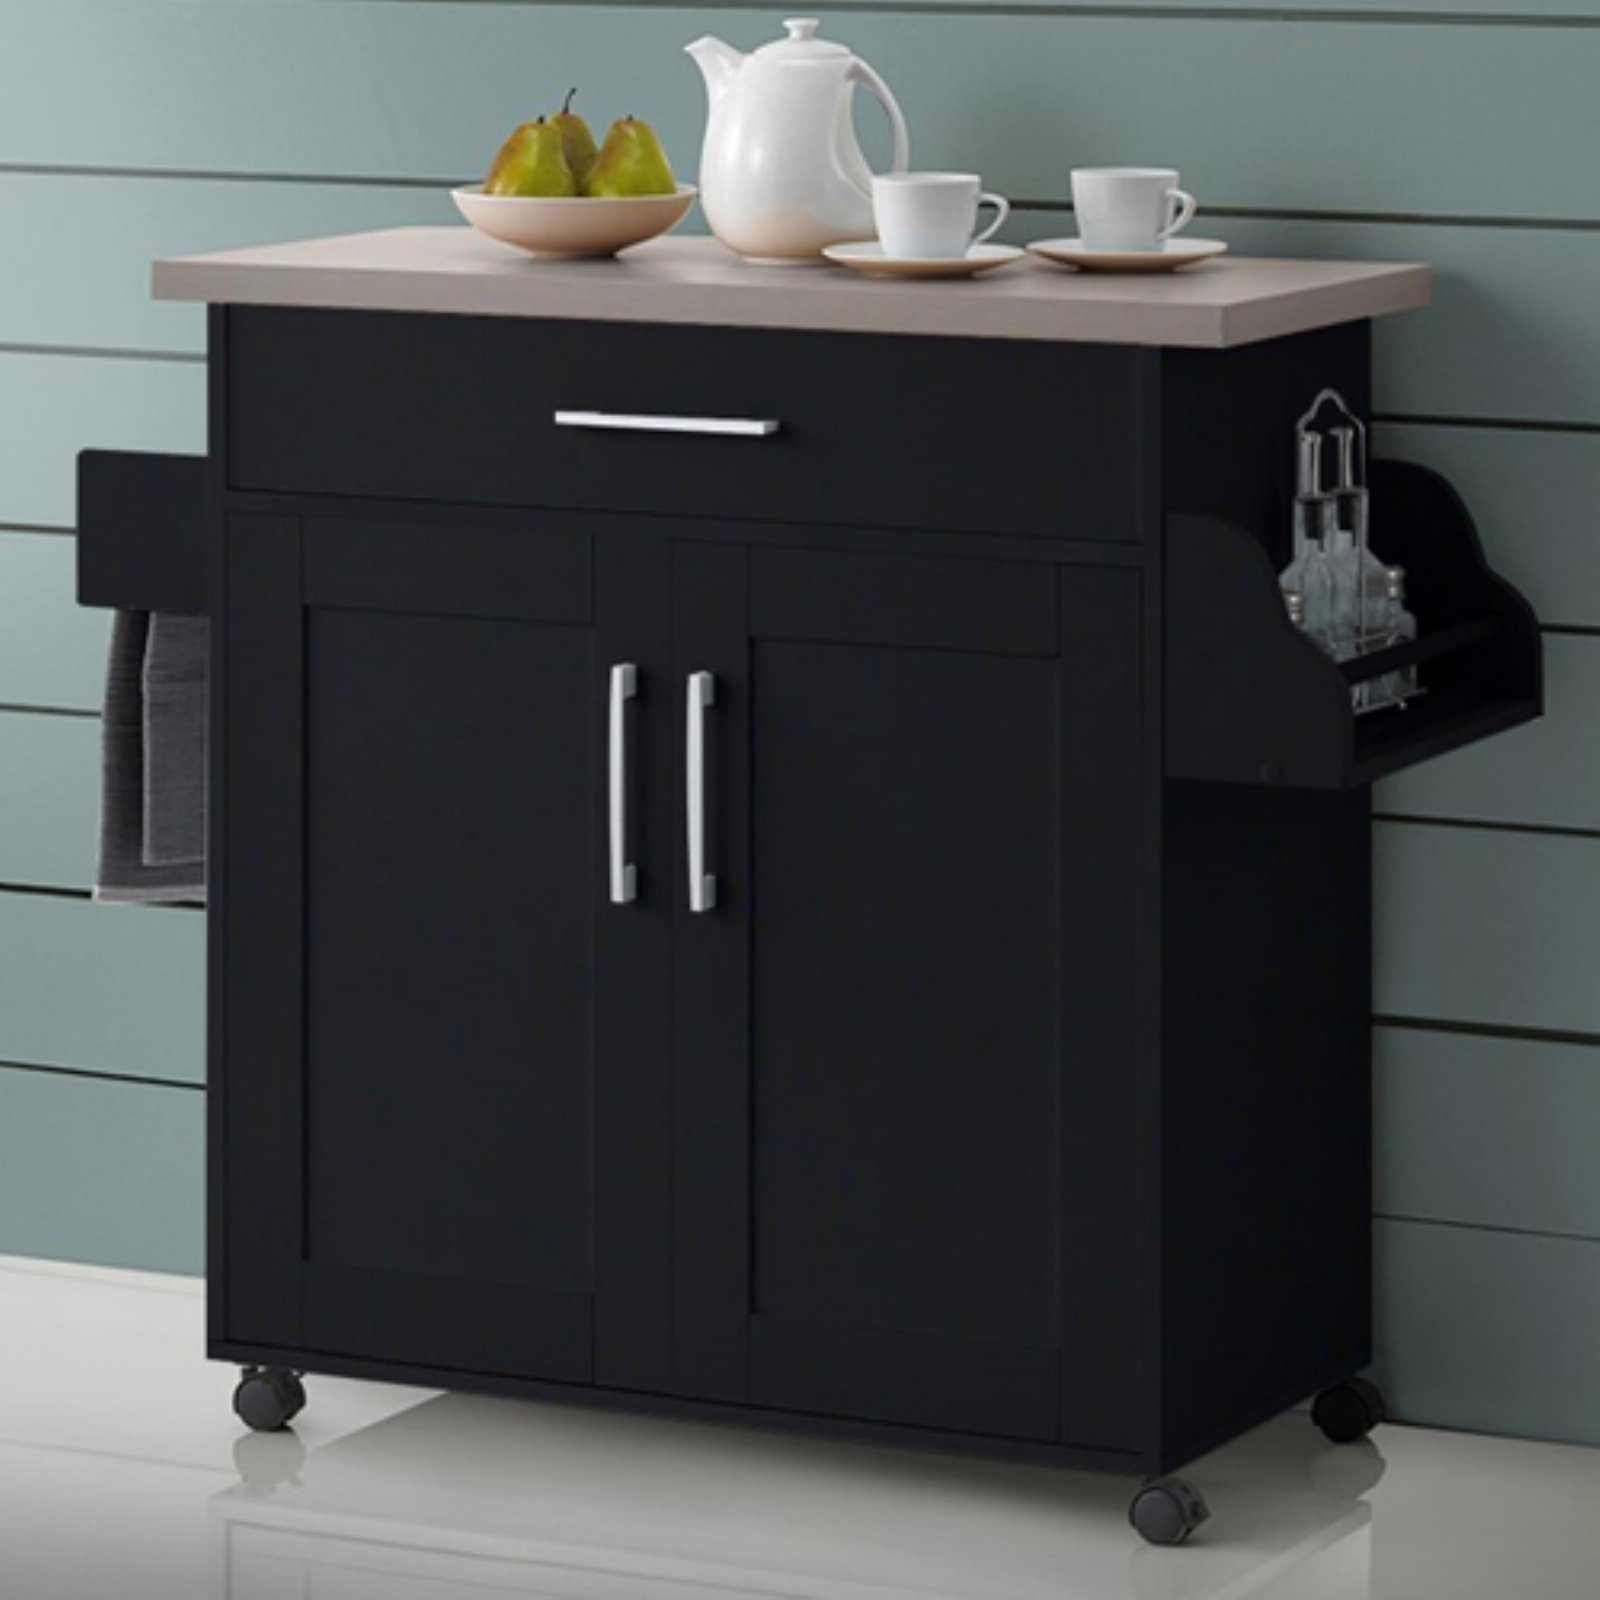 Details About Kitchen Carts With Storage And Drawers 2 Door Bar Brown Rolling On Wheels Island